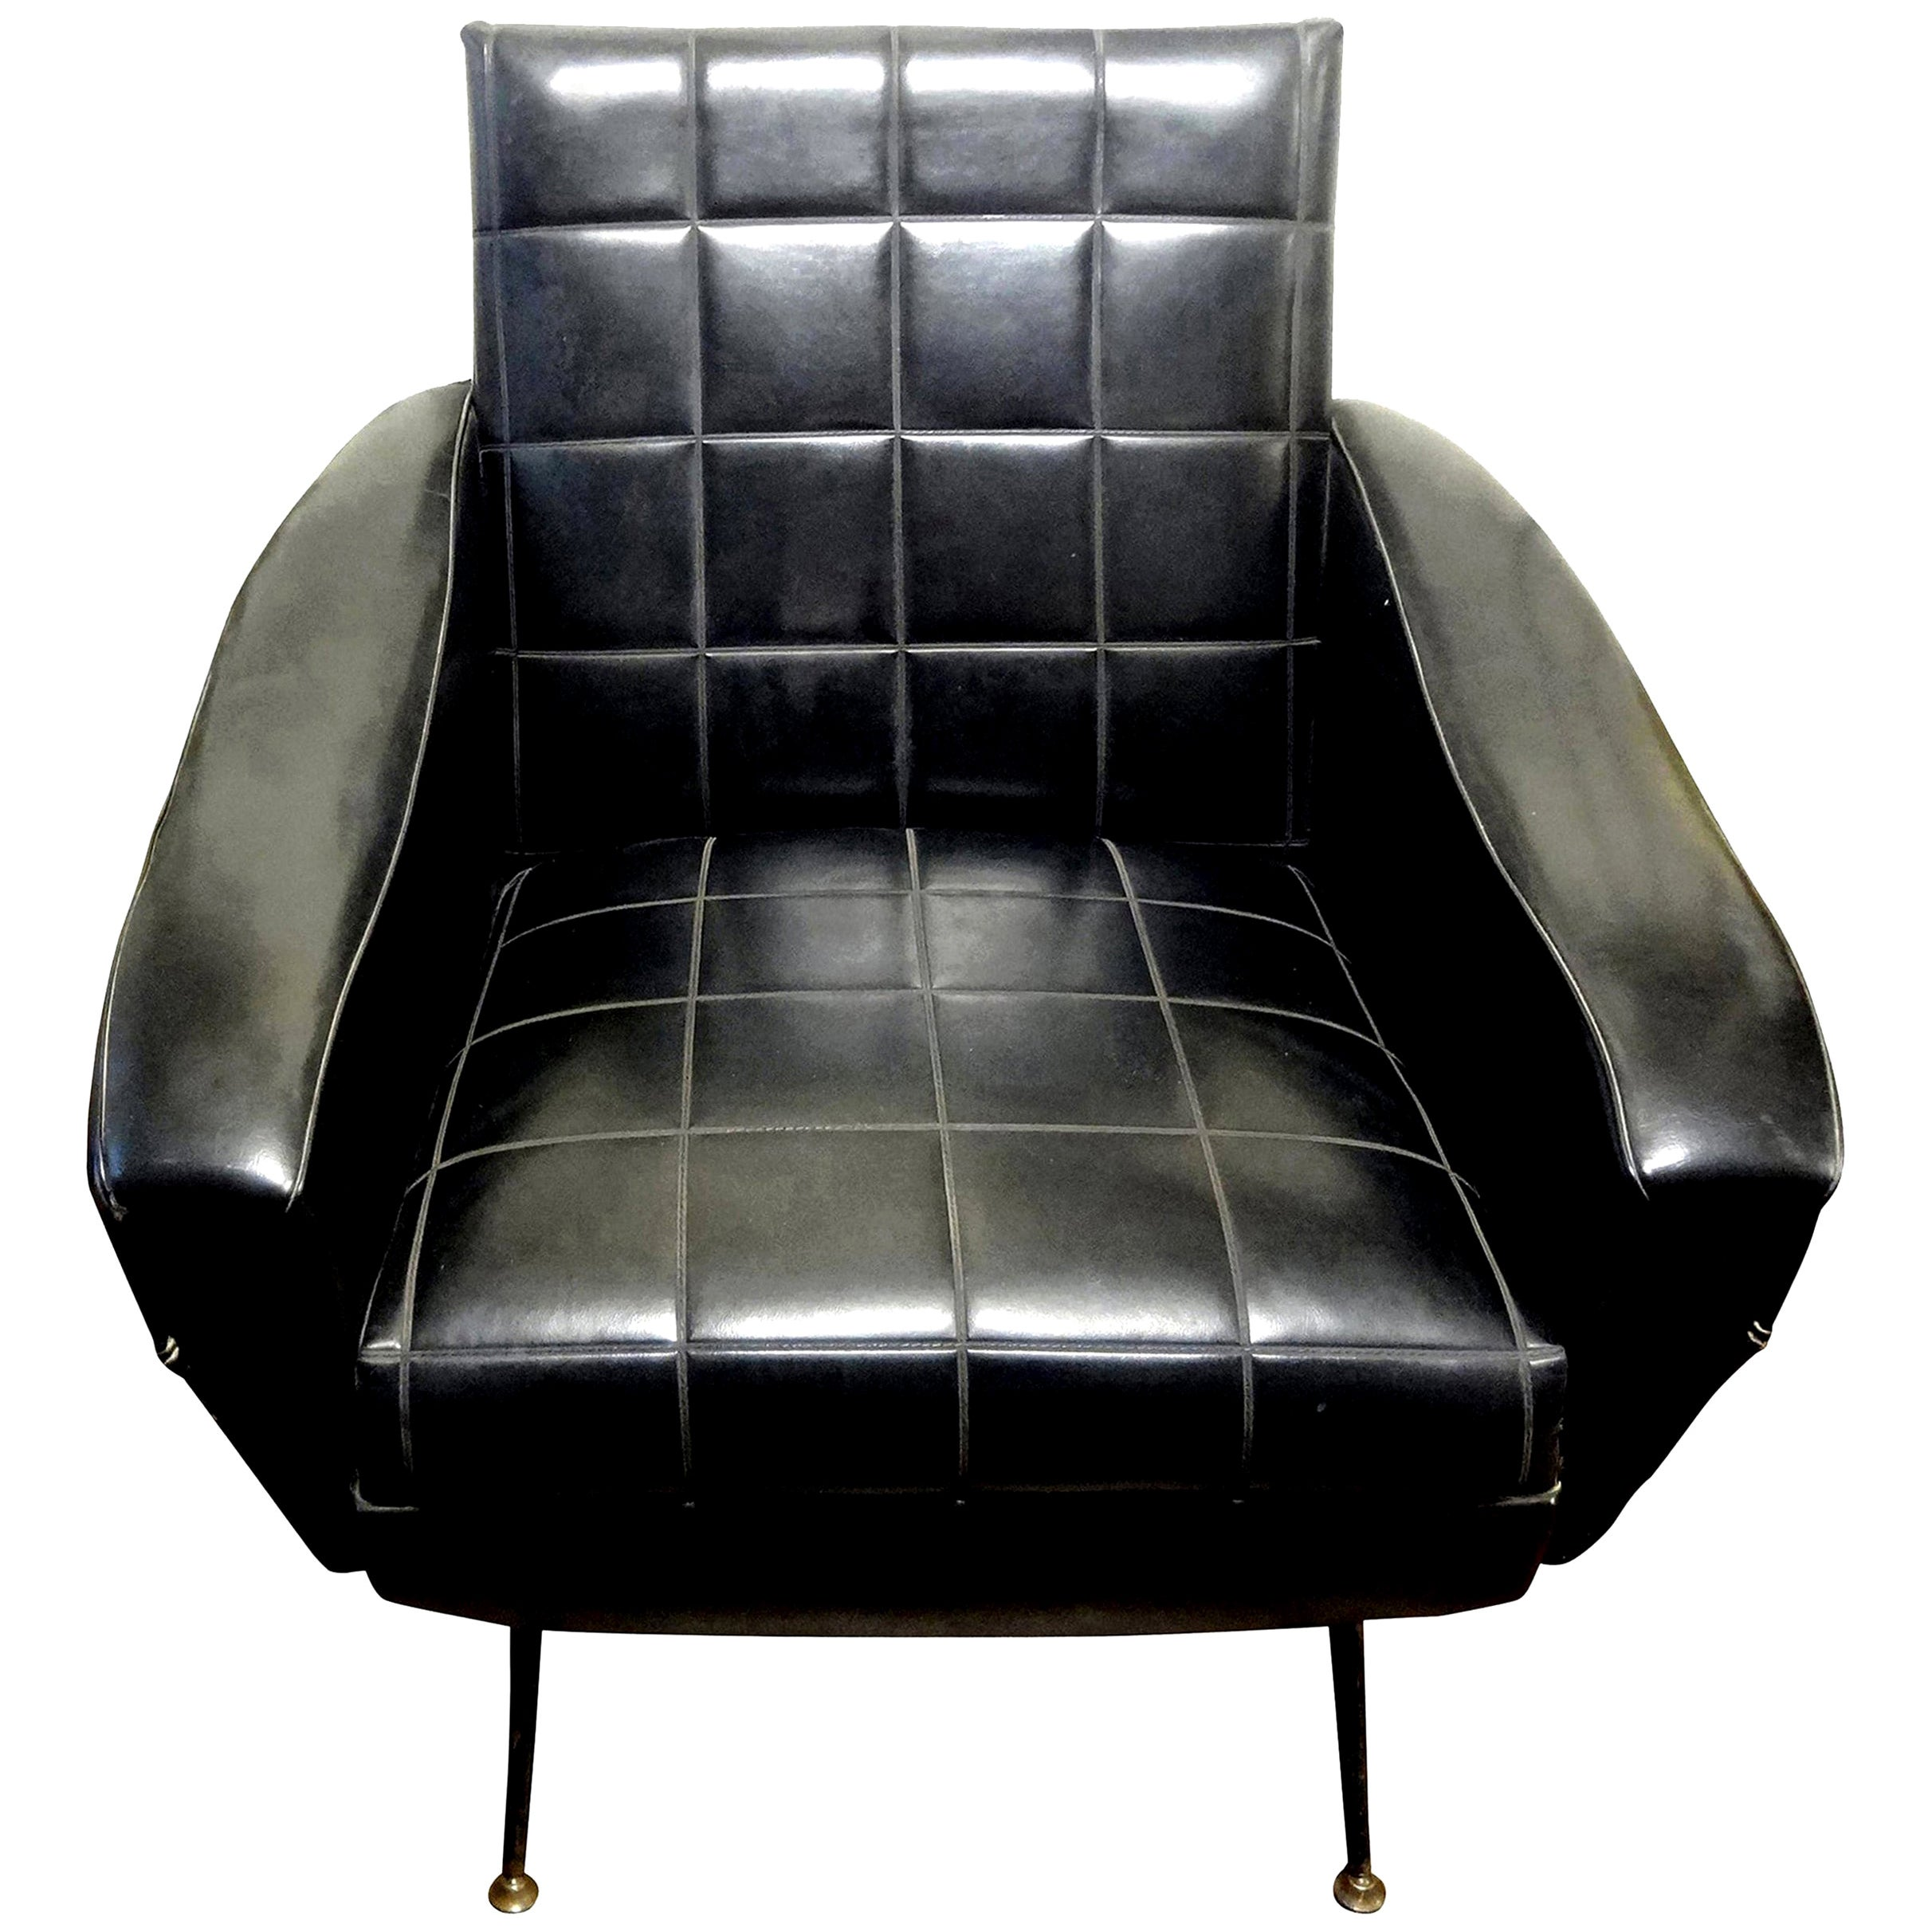 Italian Sculptural Lounge Chair in the Manner of Minotti